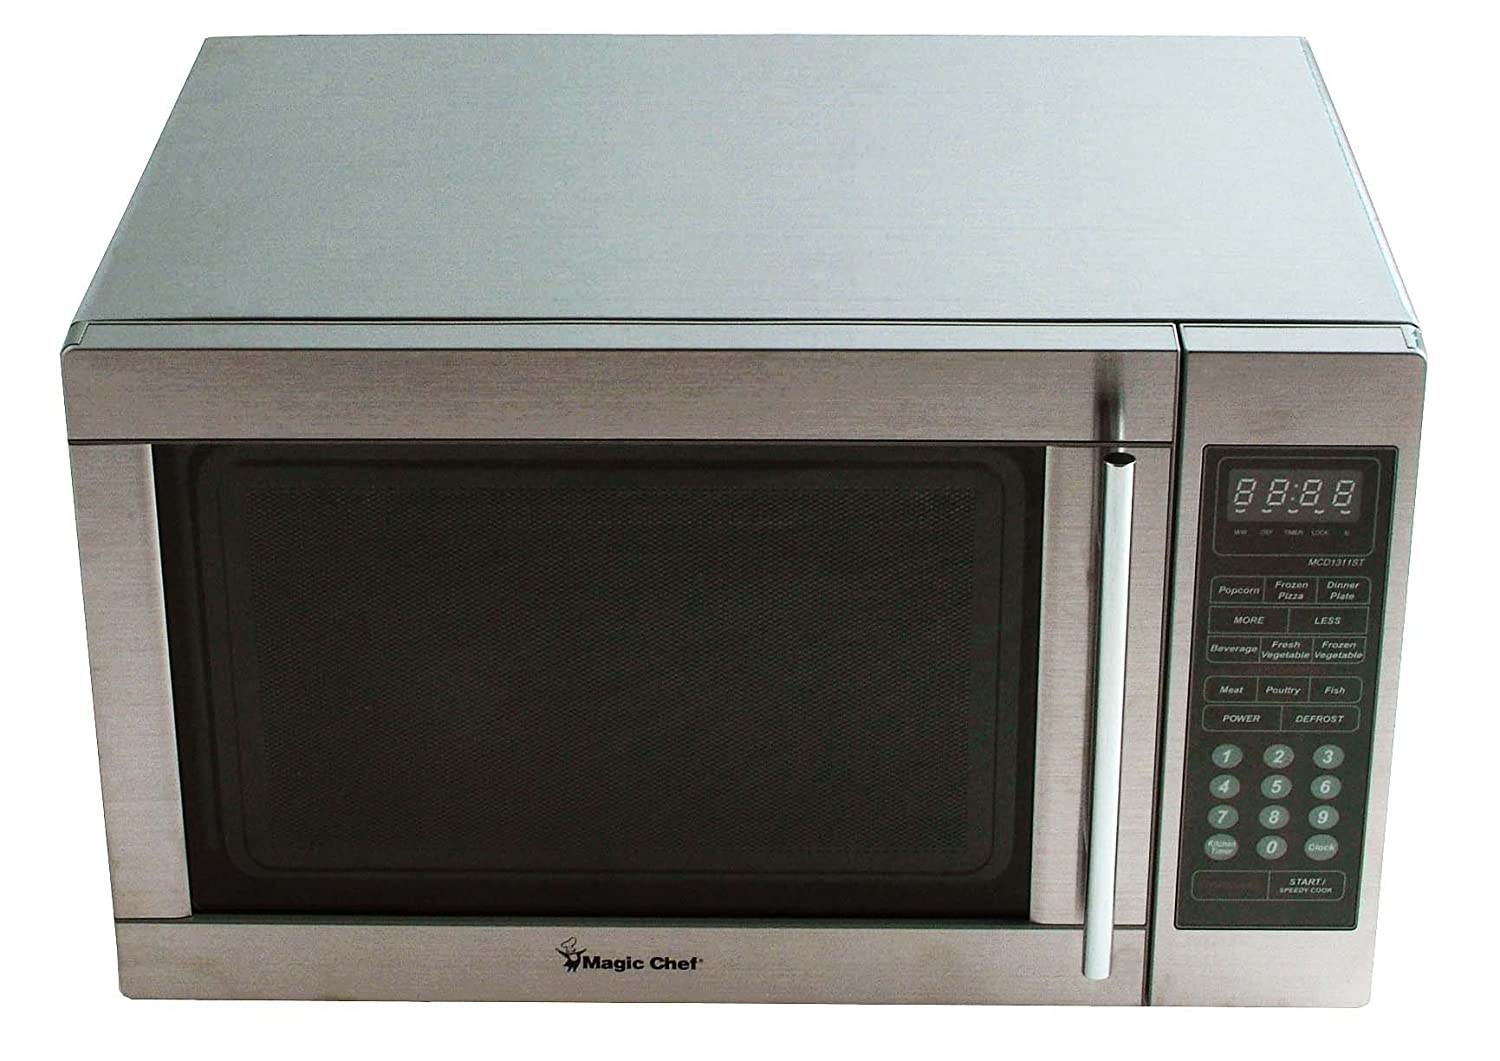 amazoncom magic chef mcd1310st 13 cuft microwave stainless steel kitchen u0026 dining